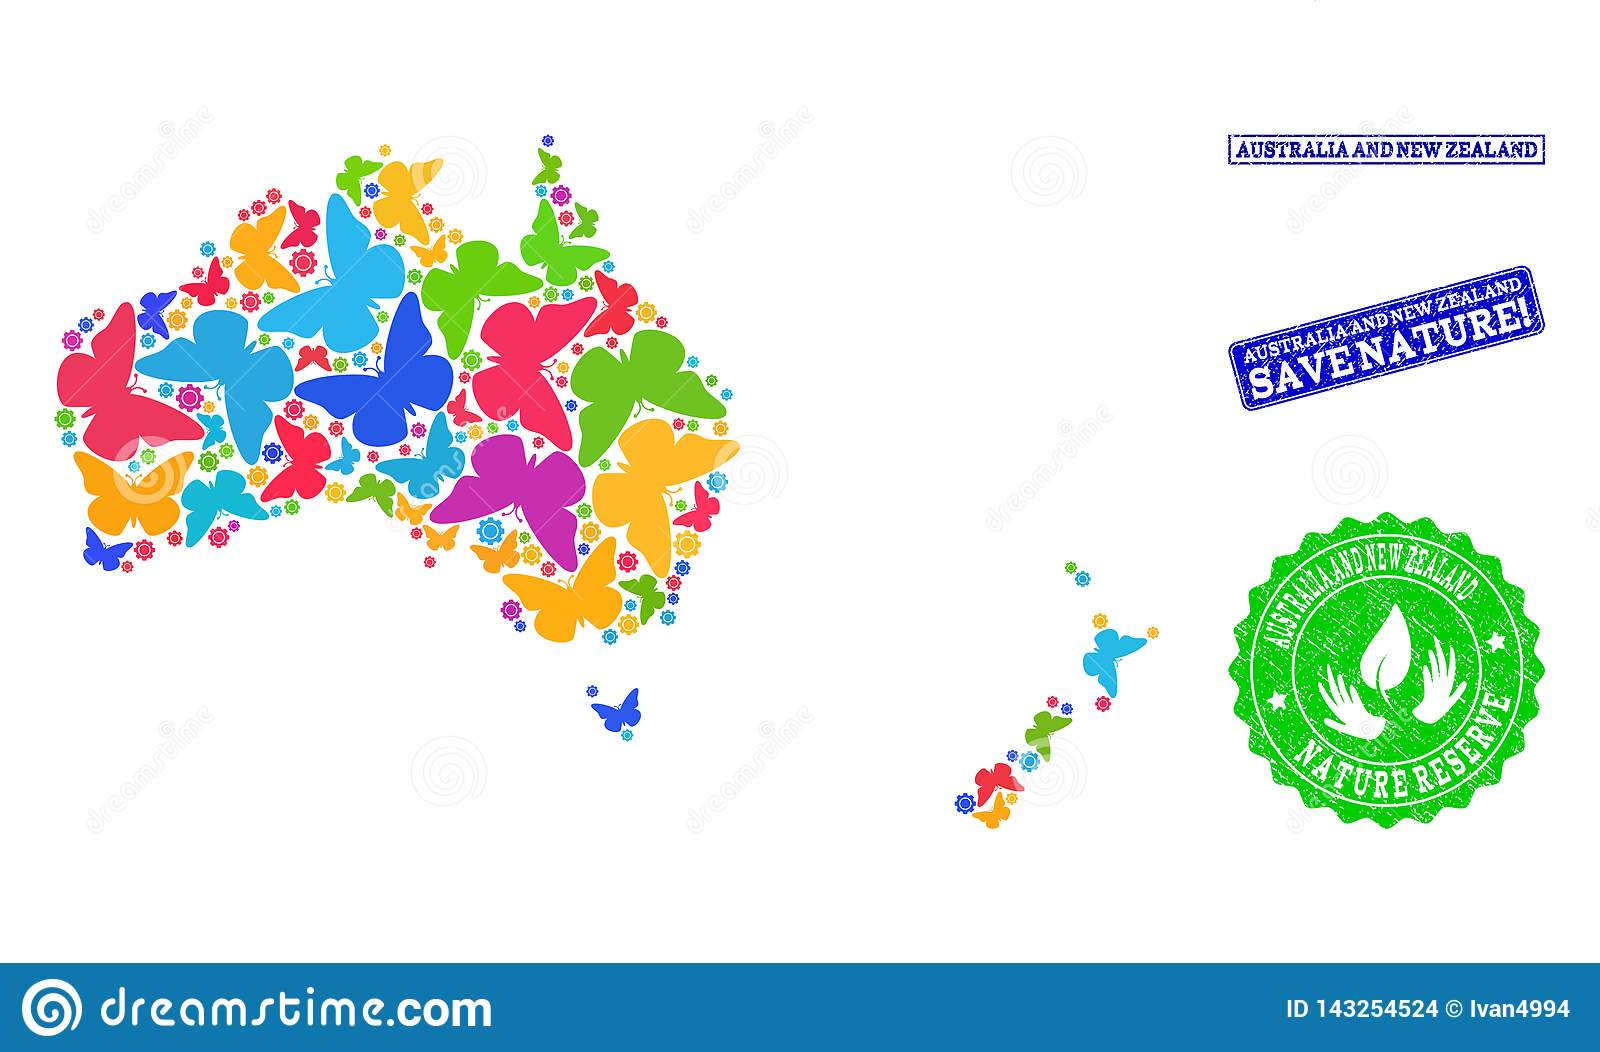 Australia To New Zealand Map.Save Nature Composition Of Map Of Australia And New Zealand With